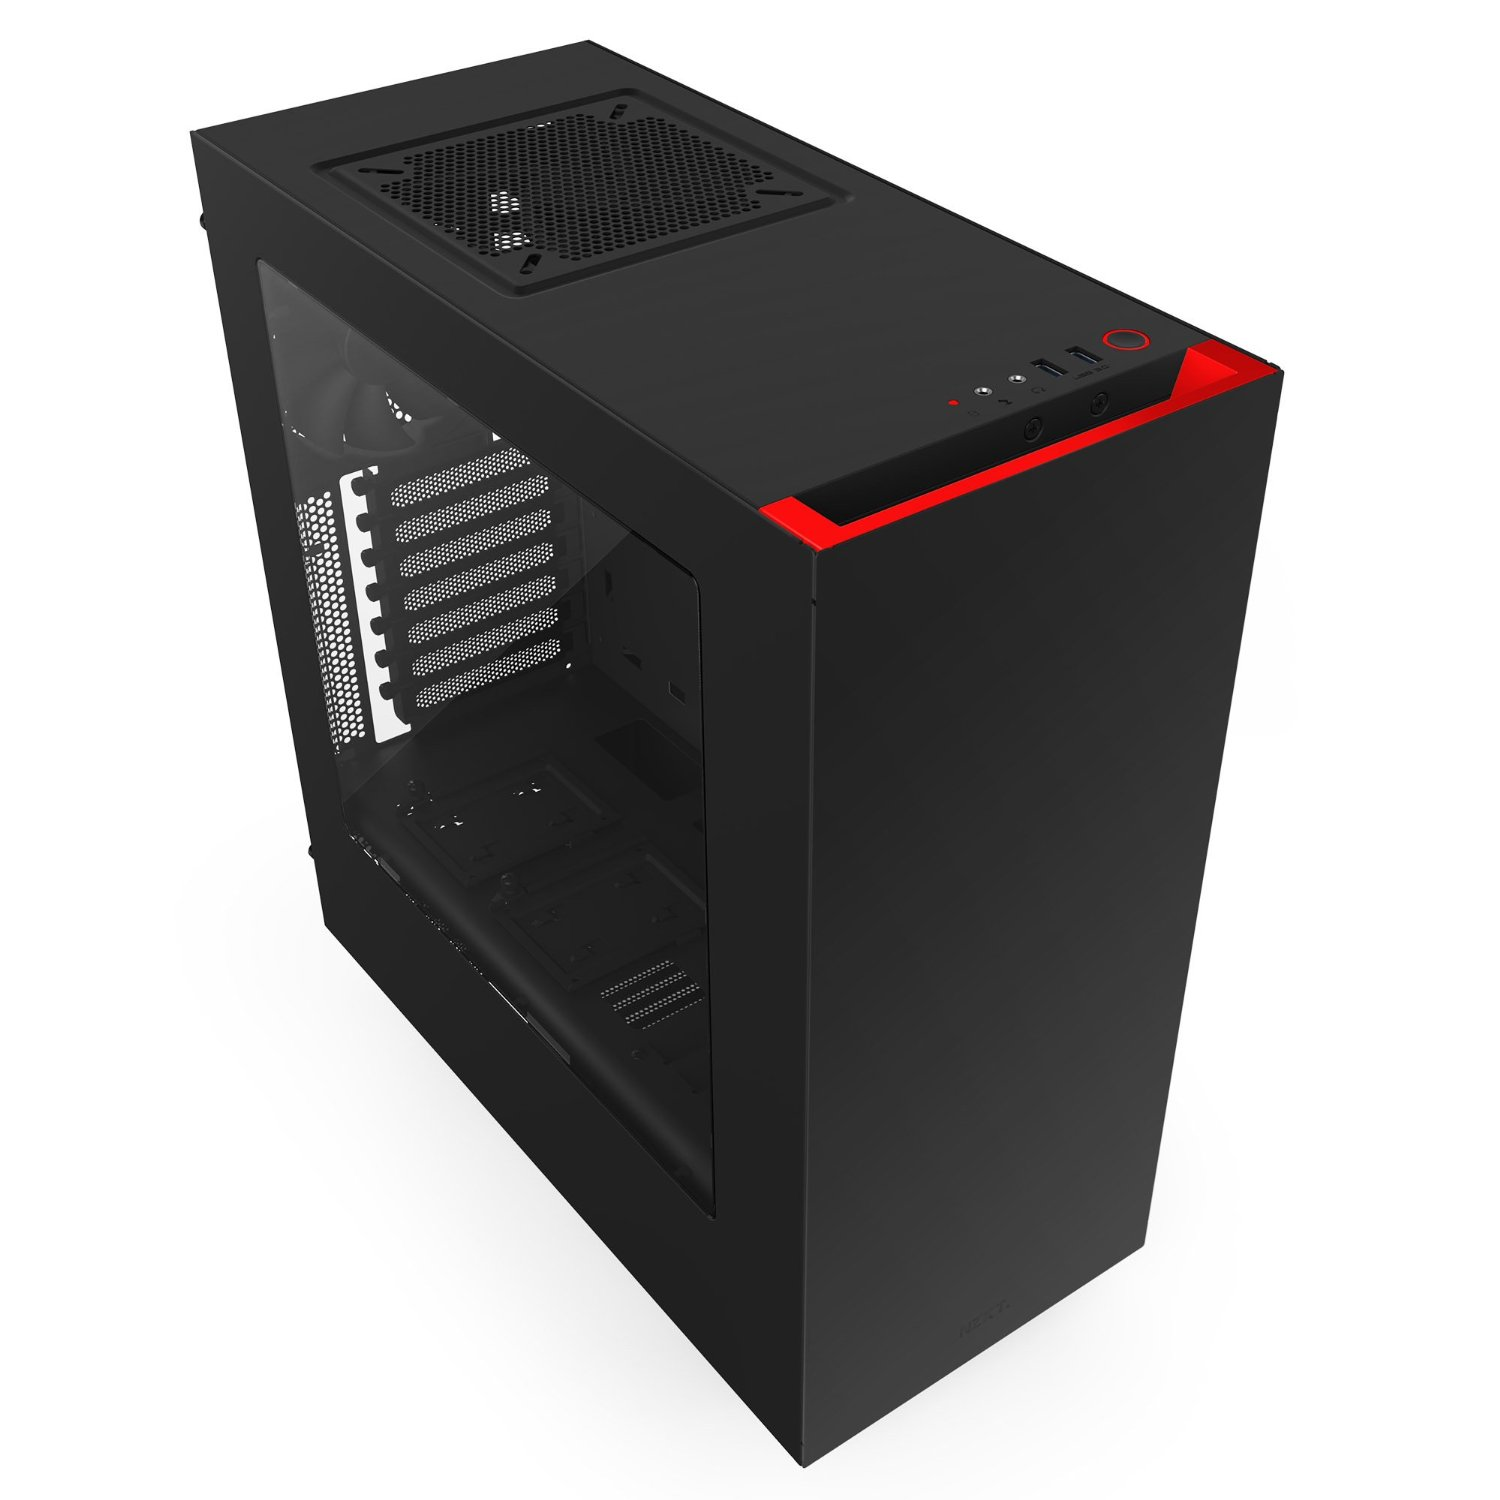 21068_nzxt_s340_black_red_pac__4_